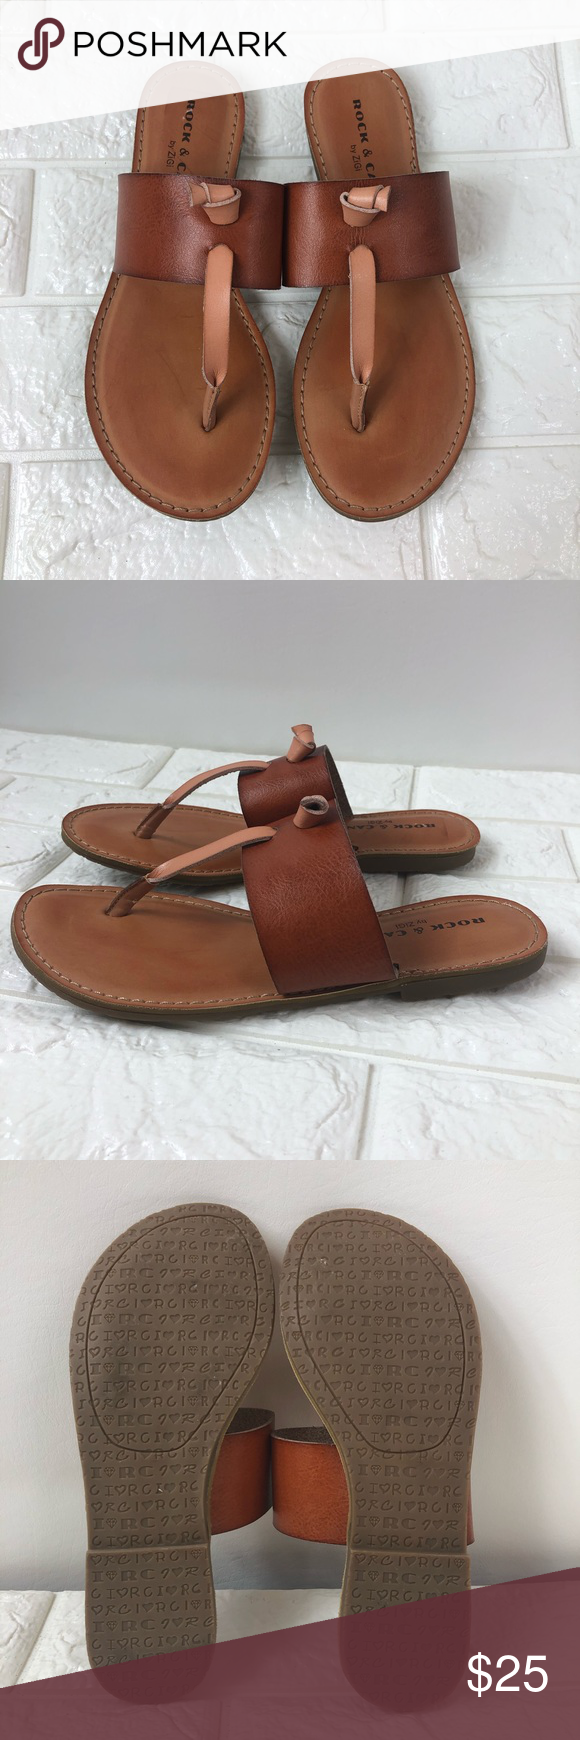 d44c670e009 Rock   Candy Blaney Flat Thong T-Strap Sandals ▫️Brand  Rock   Candy